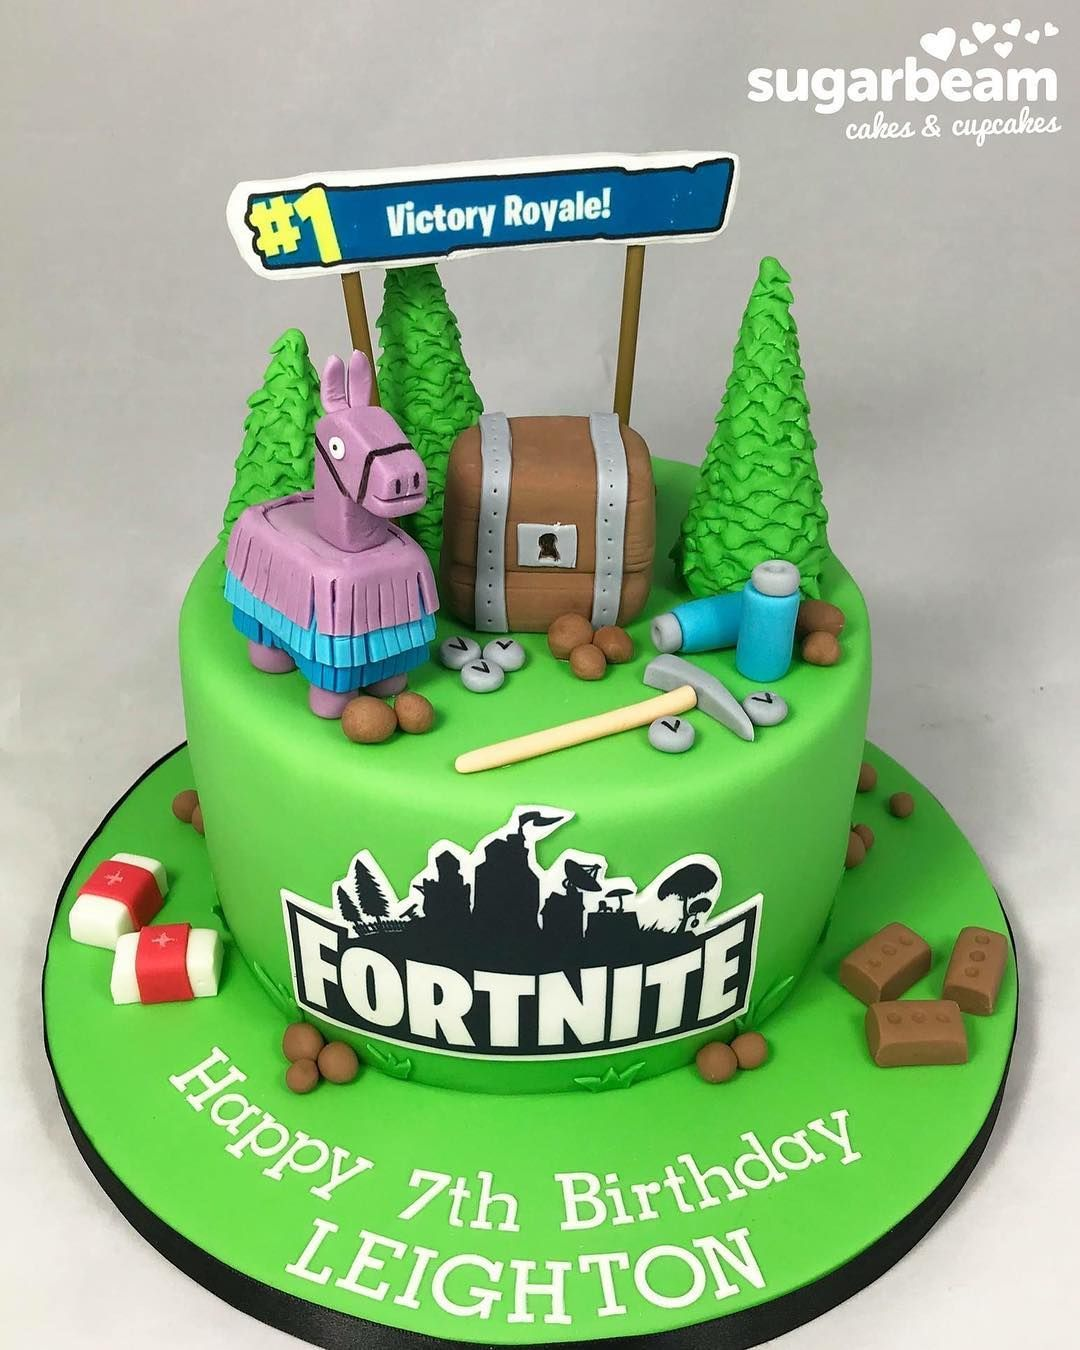 20 Fortnite Cake Ideas For An Epic Birthday Party In 2020